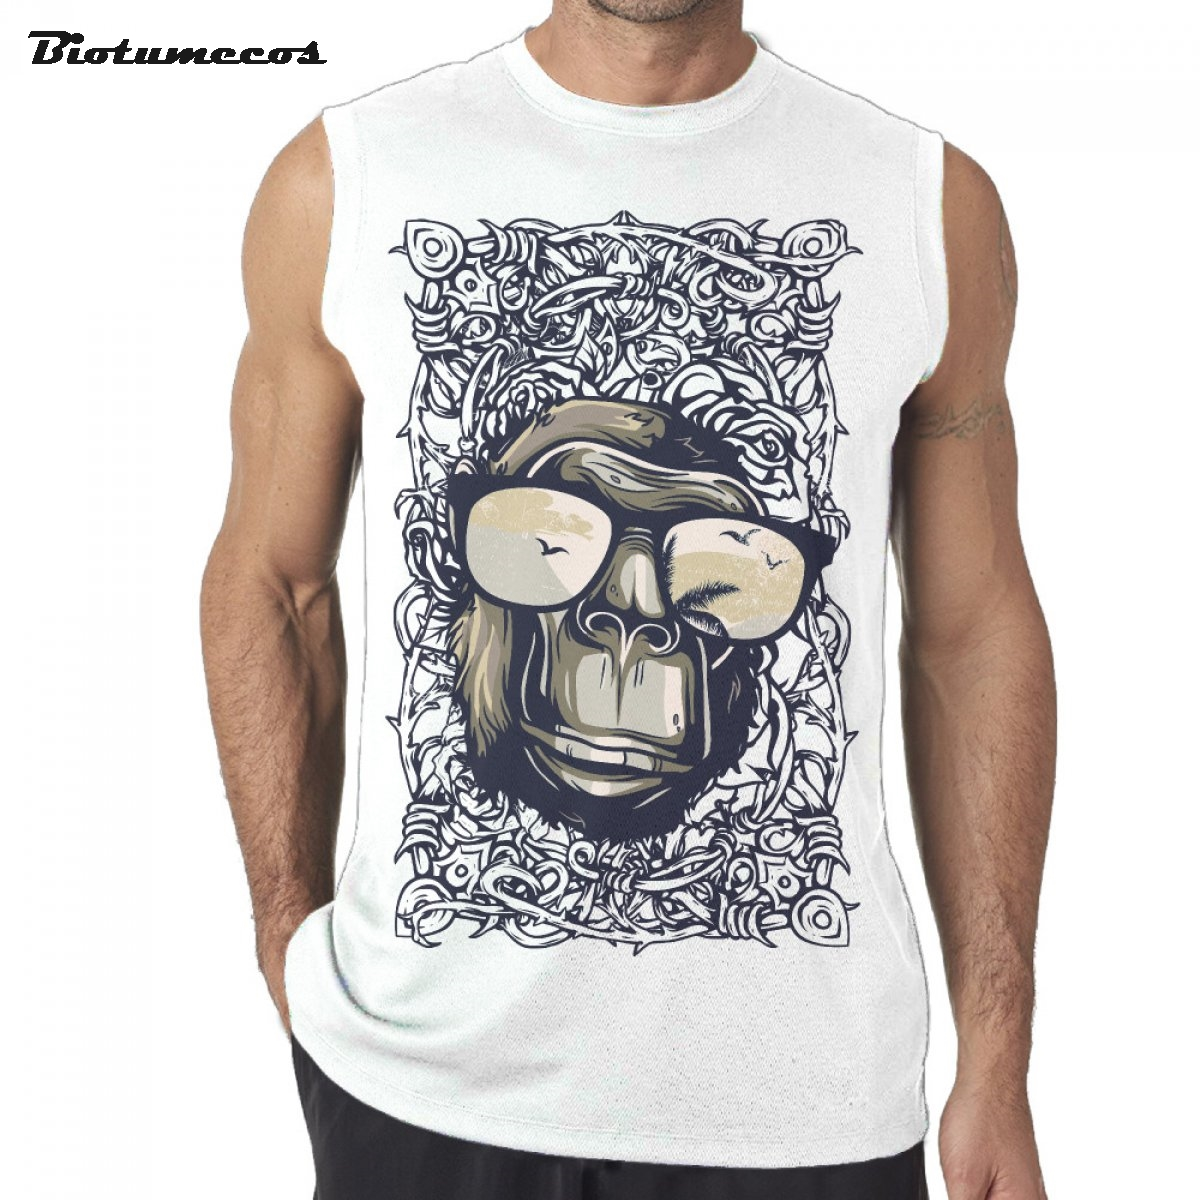 Men Tank Tops Fashion Brand Sleeveless T shirts Ape Man Wear Big Glasses Full Of Cirrus Thorns Printed Undershirts MWD025